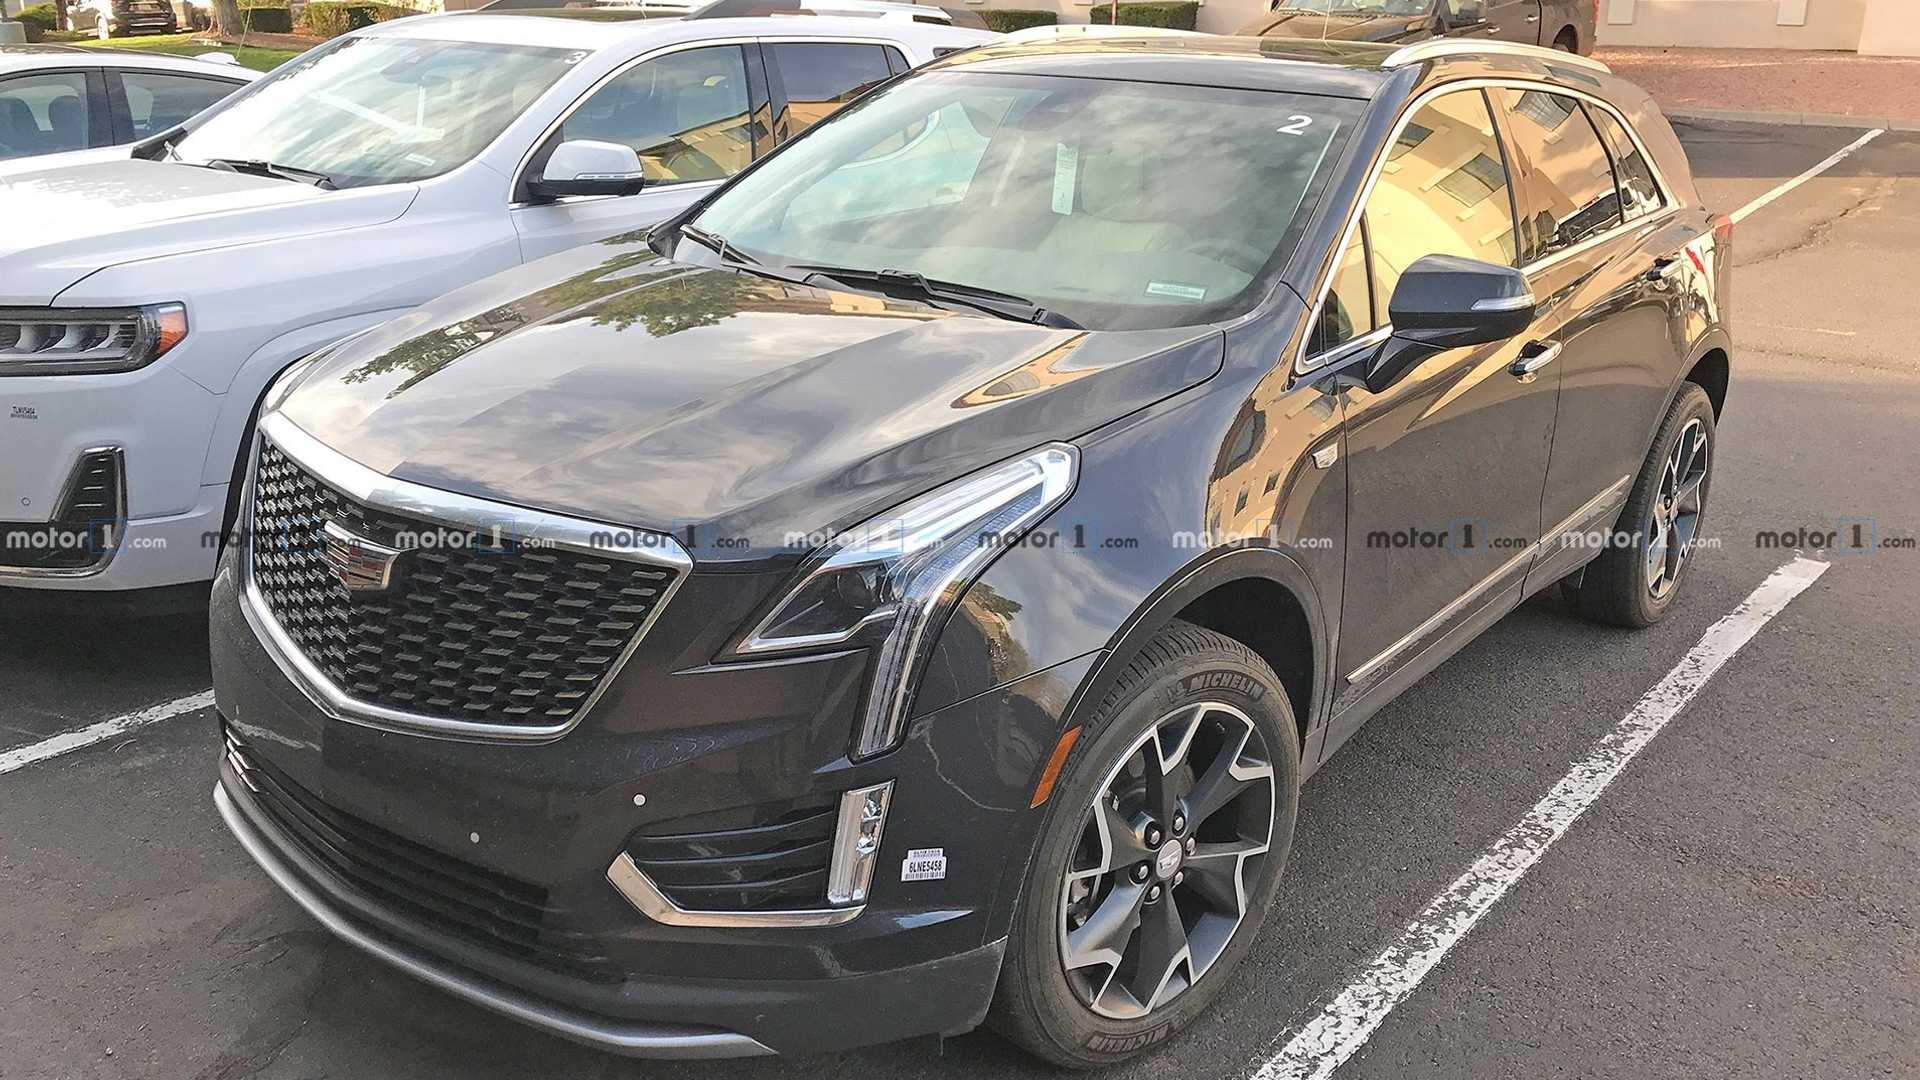 25 New 2019 Spy Shots Cadillac Xt5 Spesification